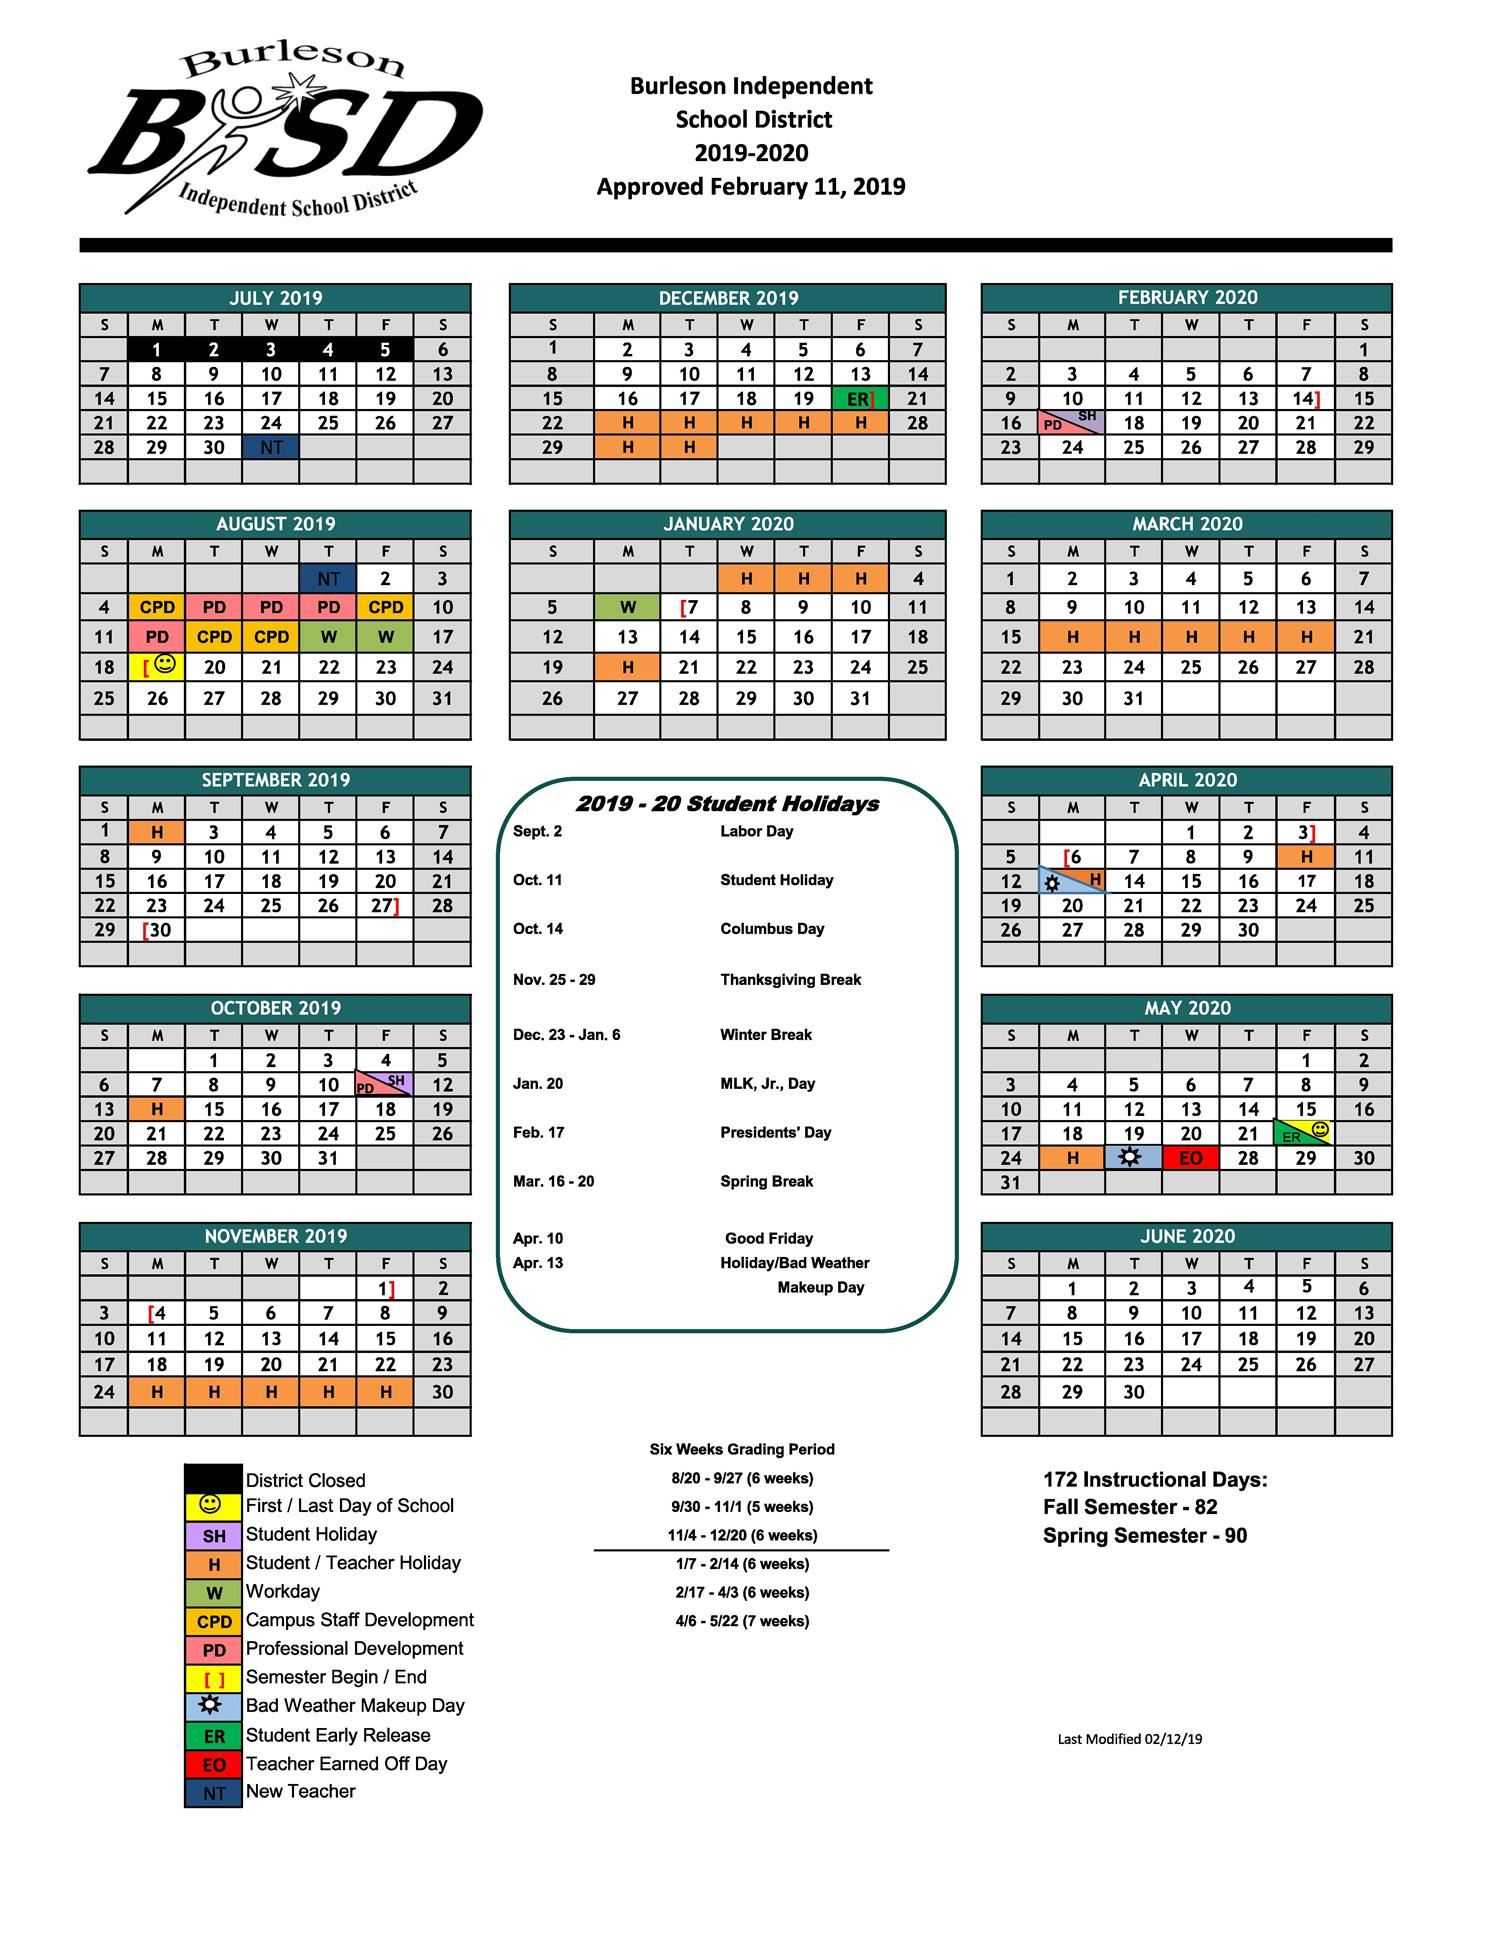 ​Burleson ISD Student Calendar for 2019-20 School Year Approved​